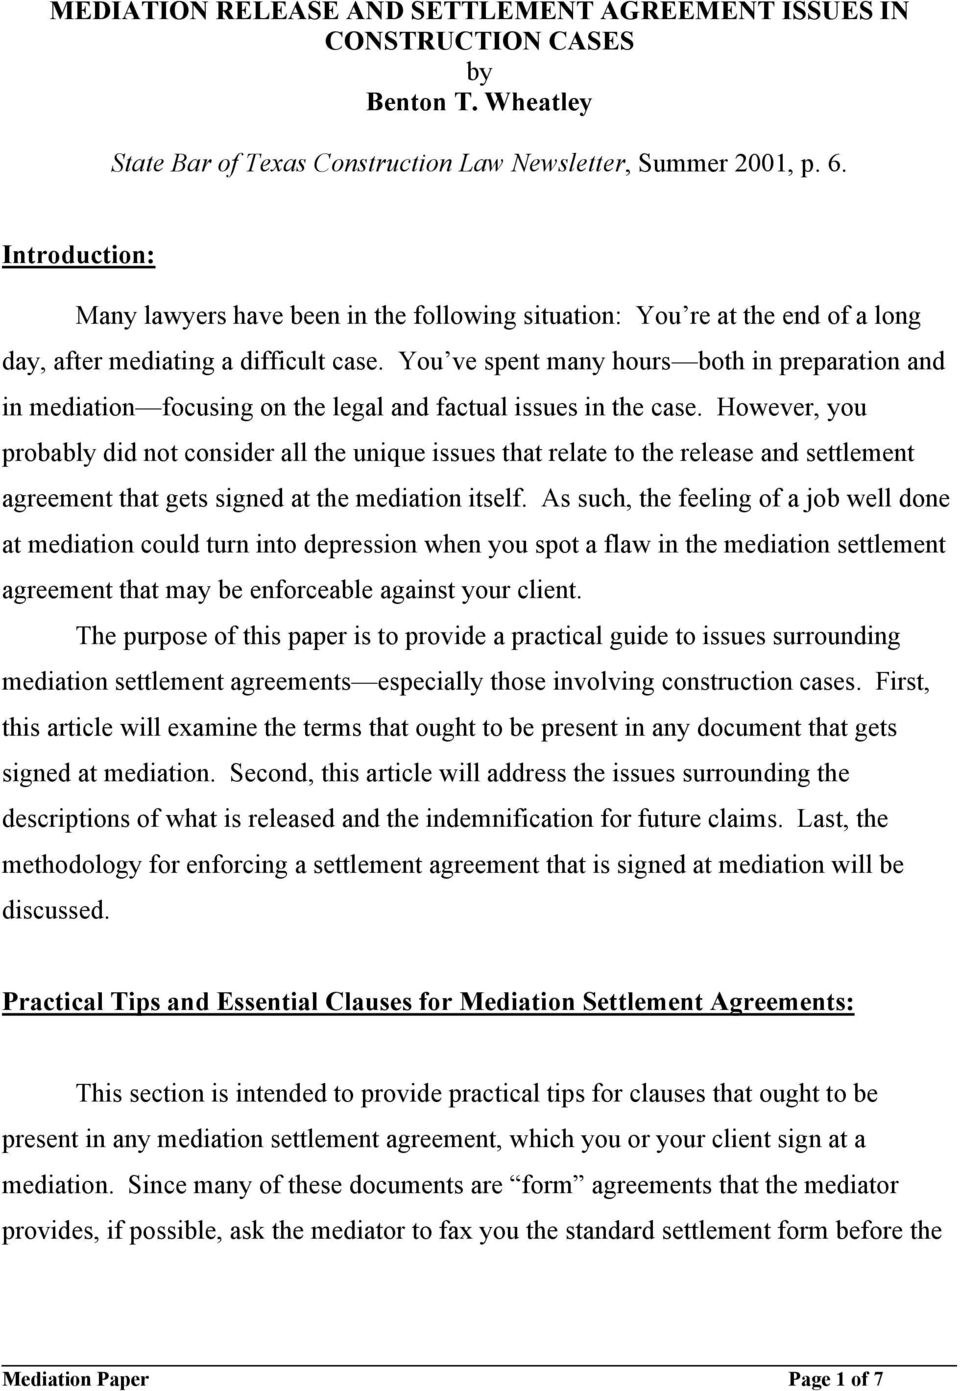 Mediation Release And Settlement Agreement Issues In